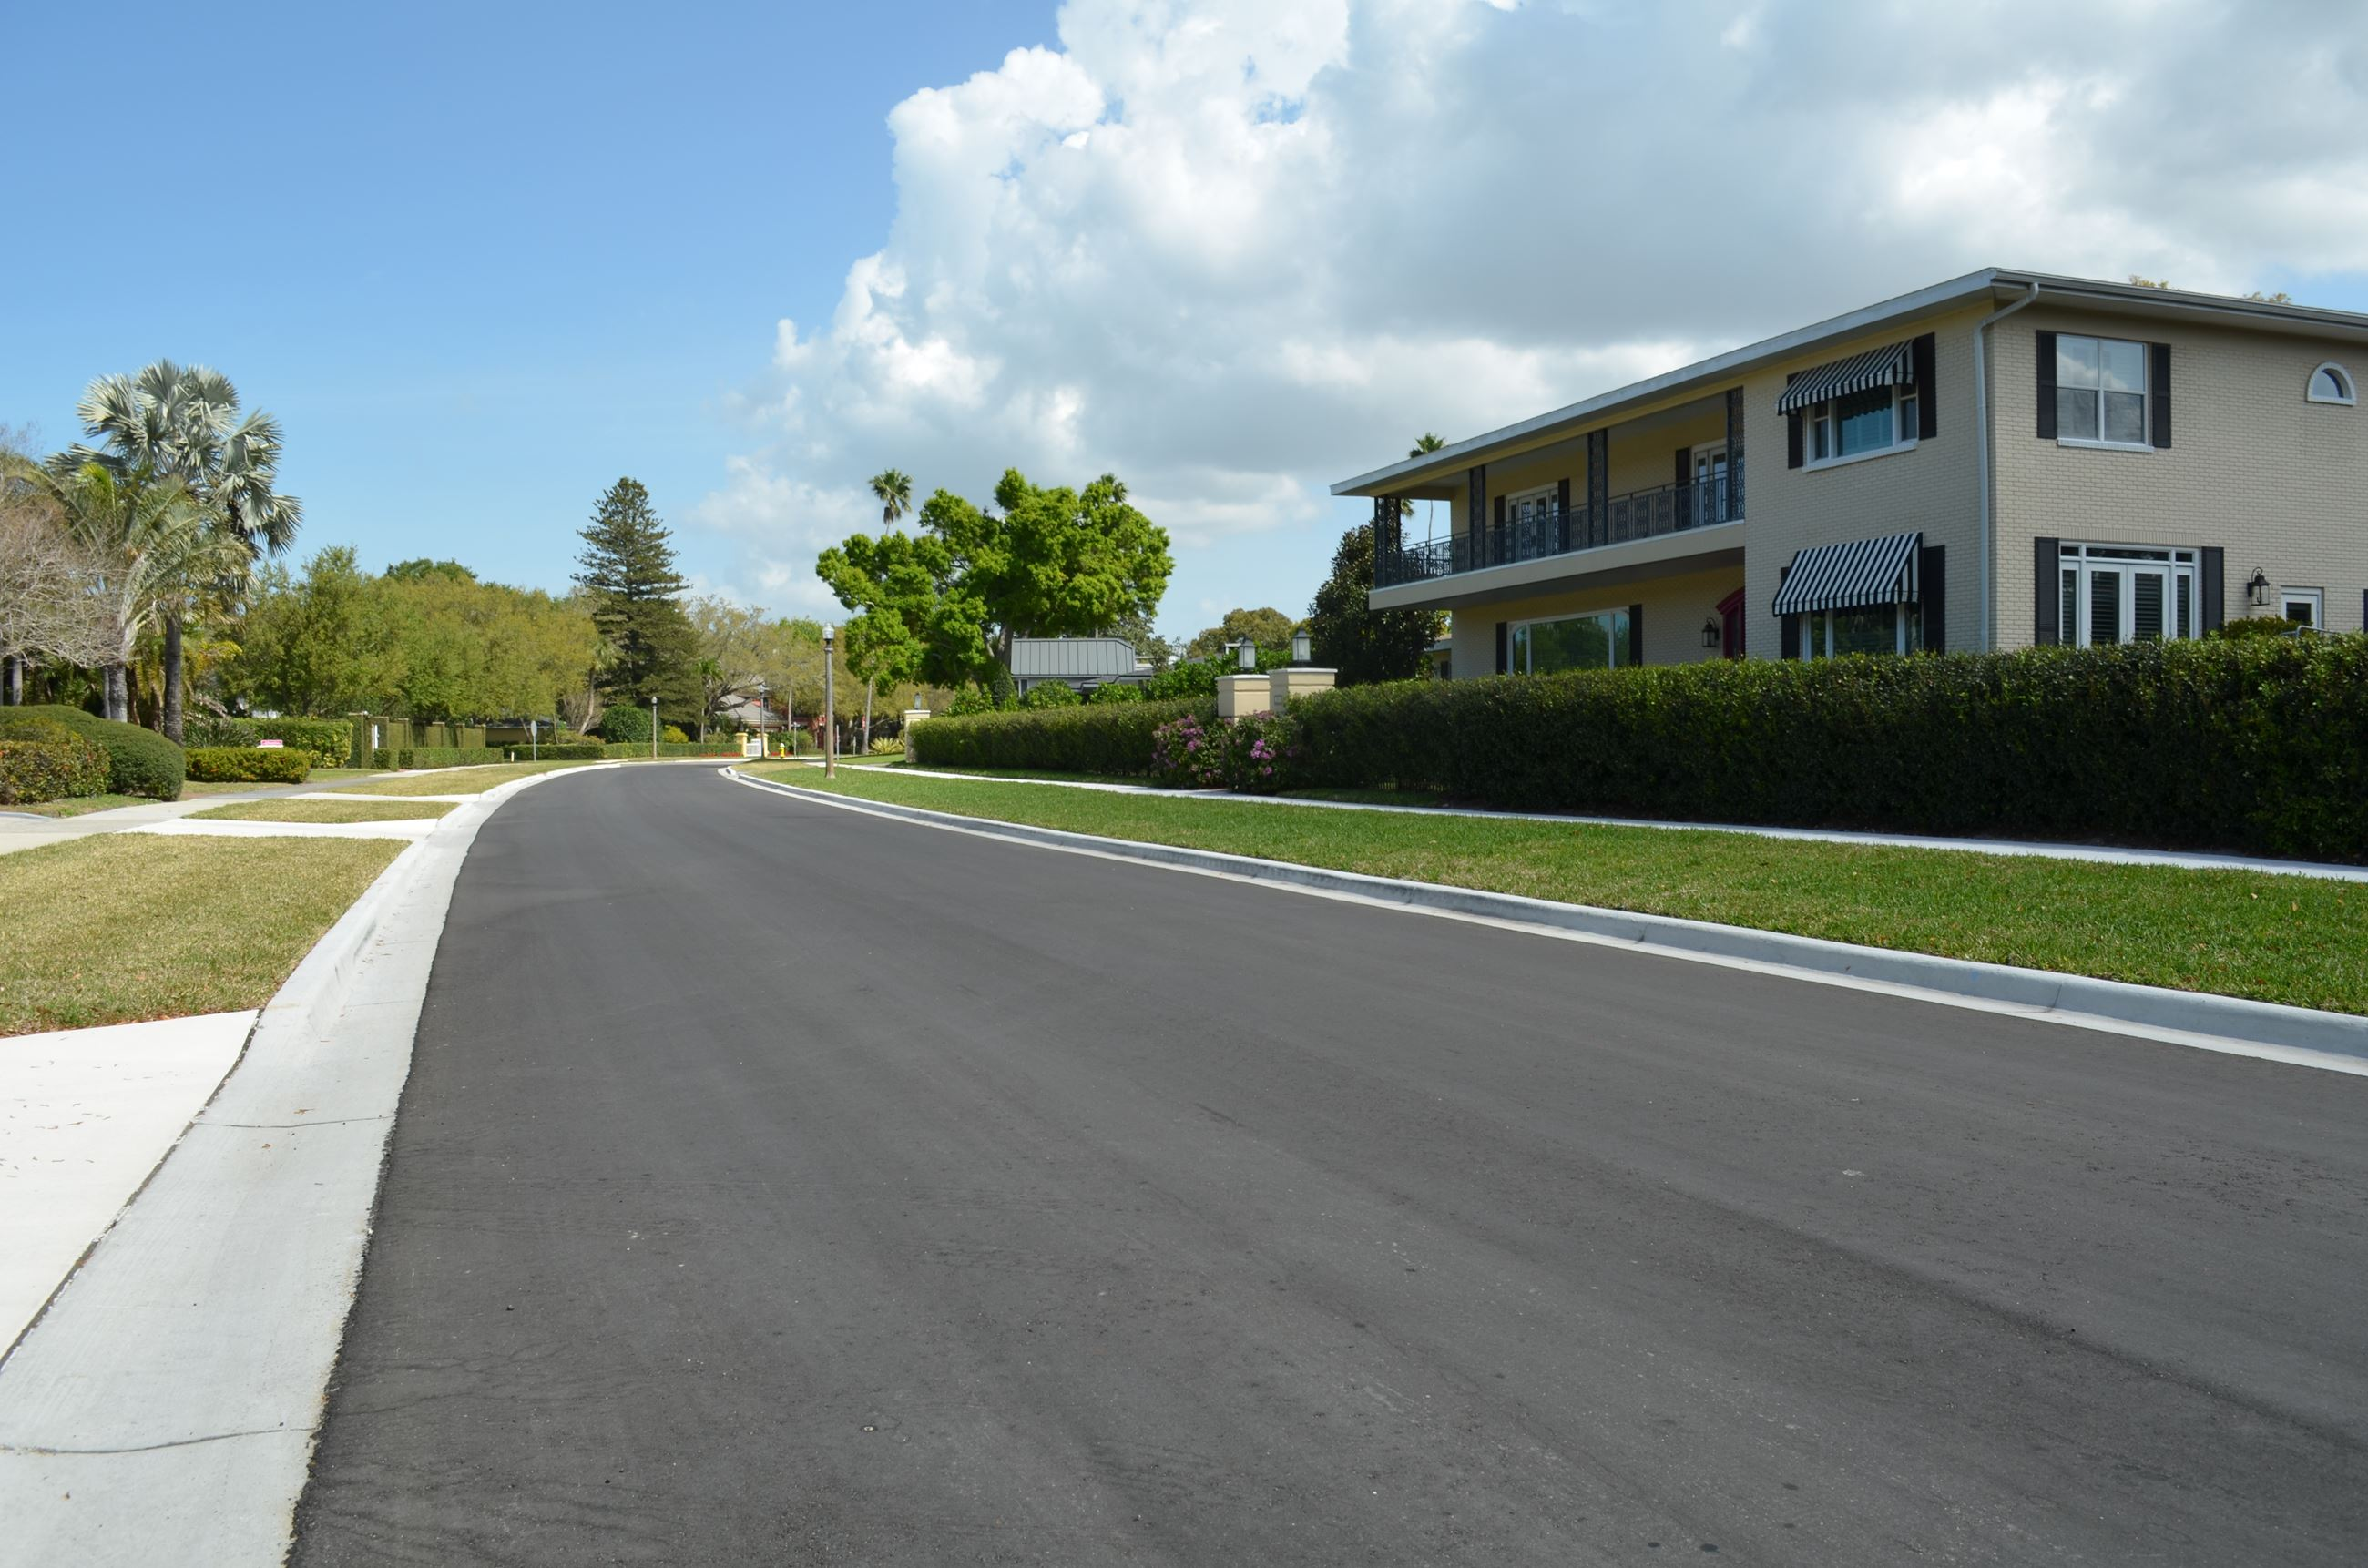 Palmetto Road near Orlando Roar and facing north - features a long and smooth resurfaced roadway